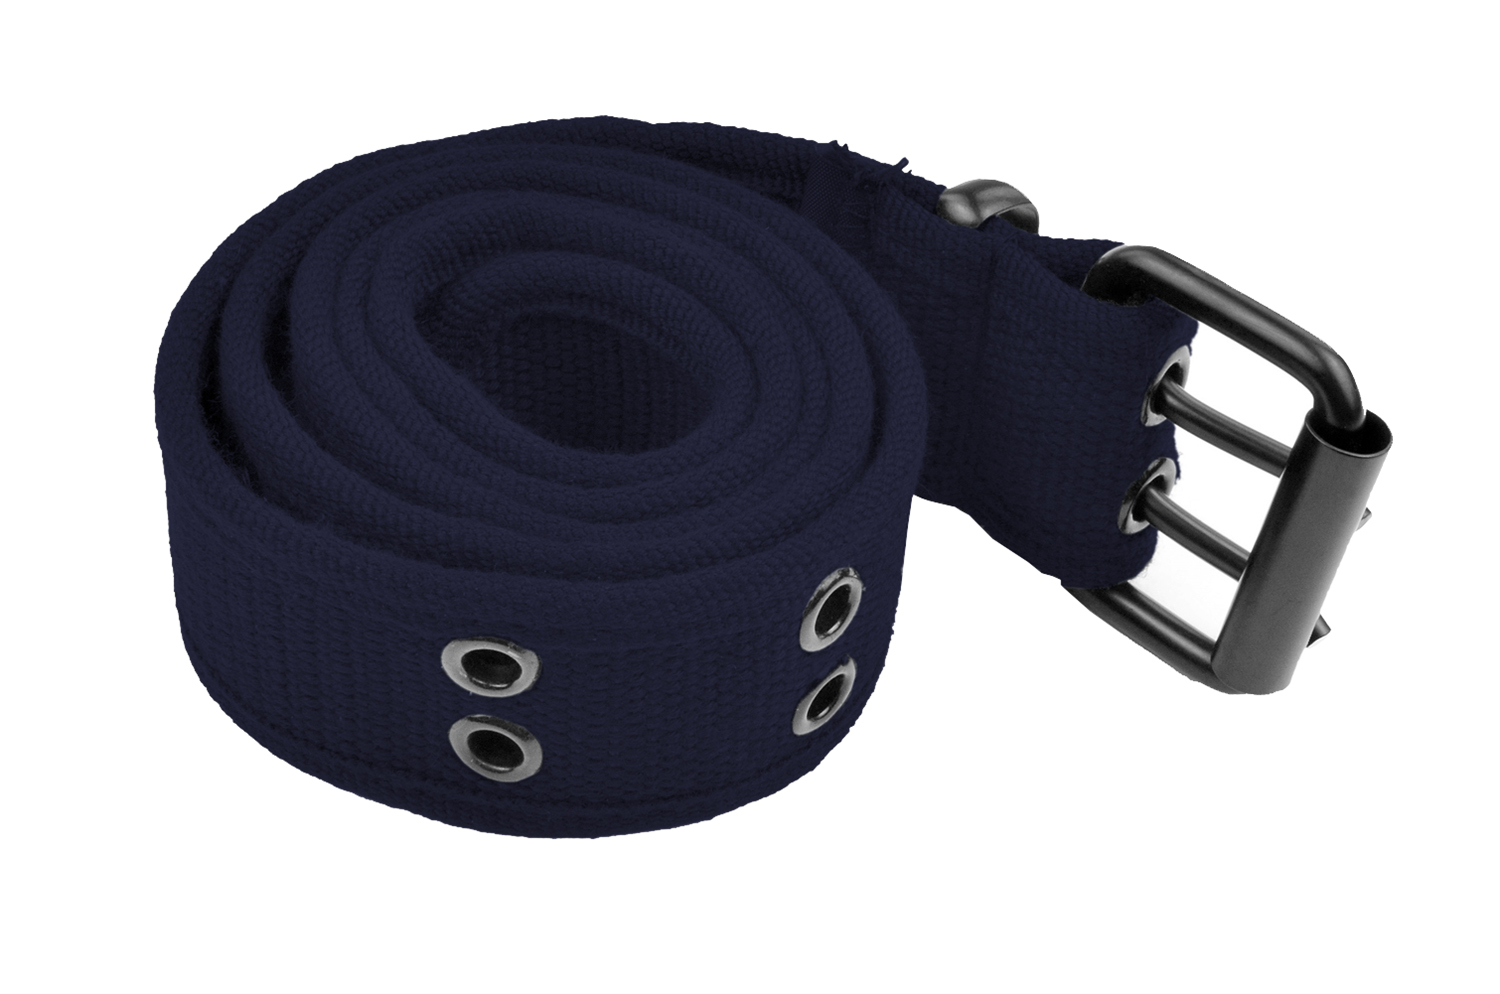 Grommet Belt for Women & Men - Double Hole Grommets Canvas Web Belts - Military Style Belt - 2 Prong Buckle by Belle Donne - Navy